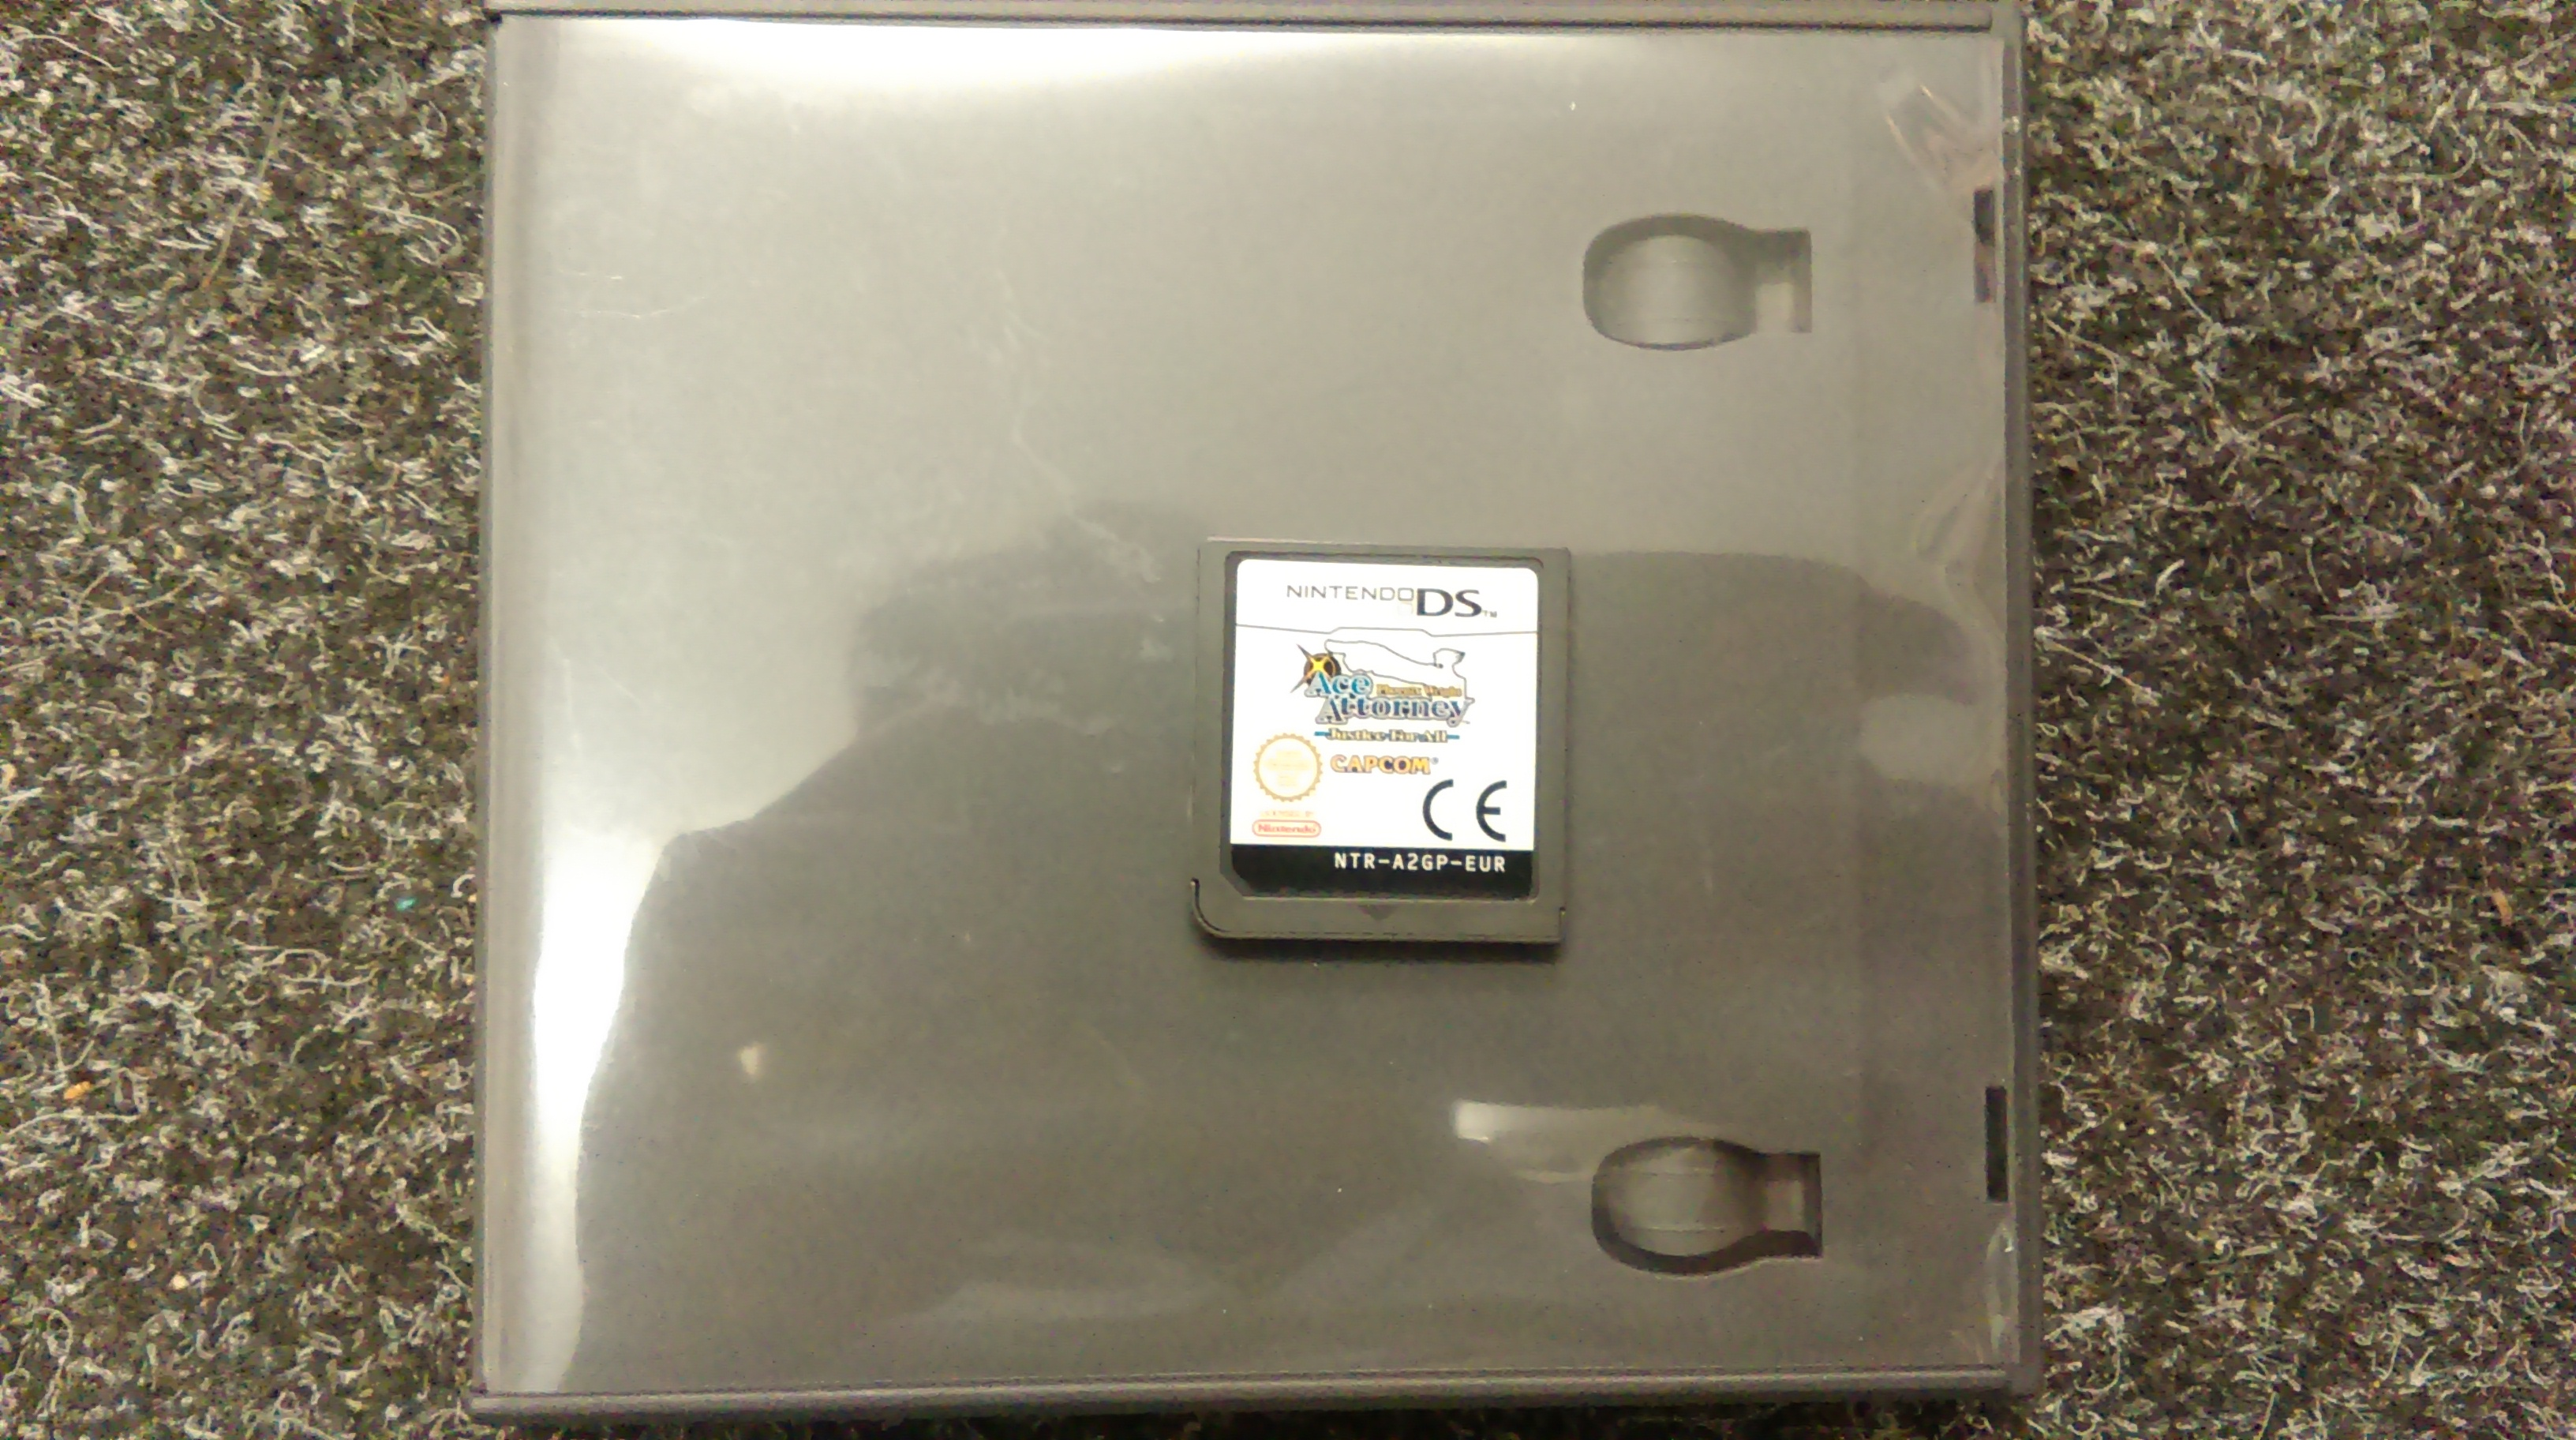 Nintendo DS Ace Attorney Justice for All